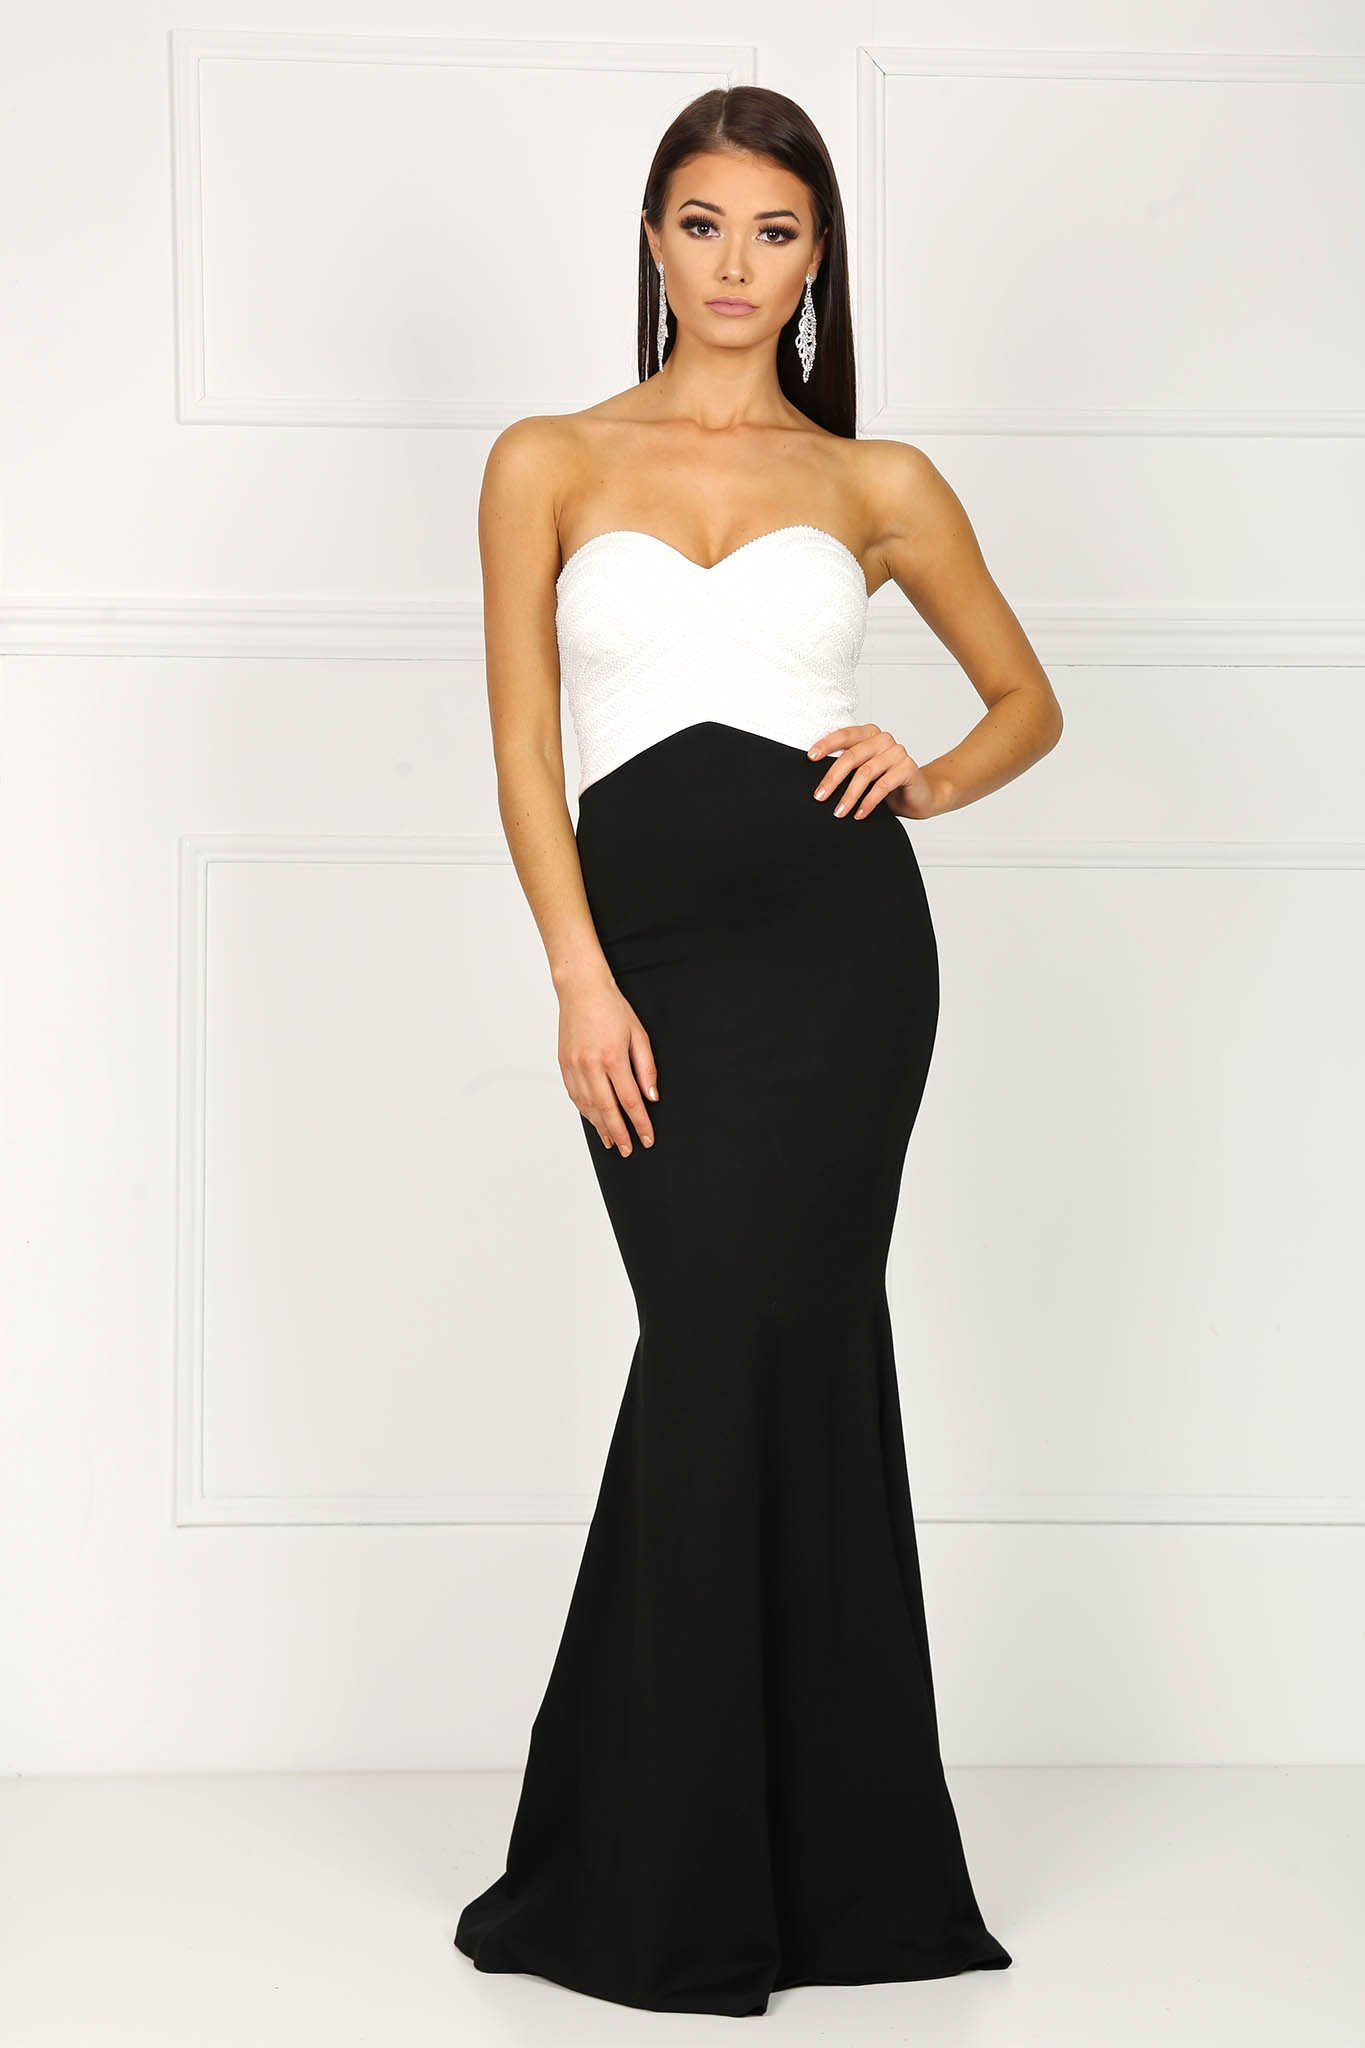 Colour block sleeveless evening floor-length gown in white at the upper body and black from the waist down with faux pearl bead details, sweetheart neckline and fishtail skirt